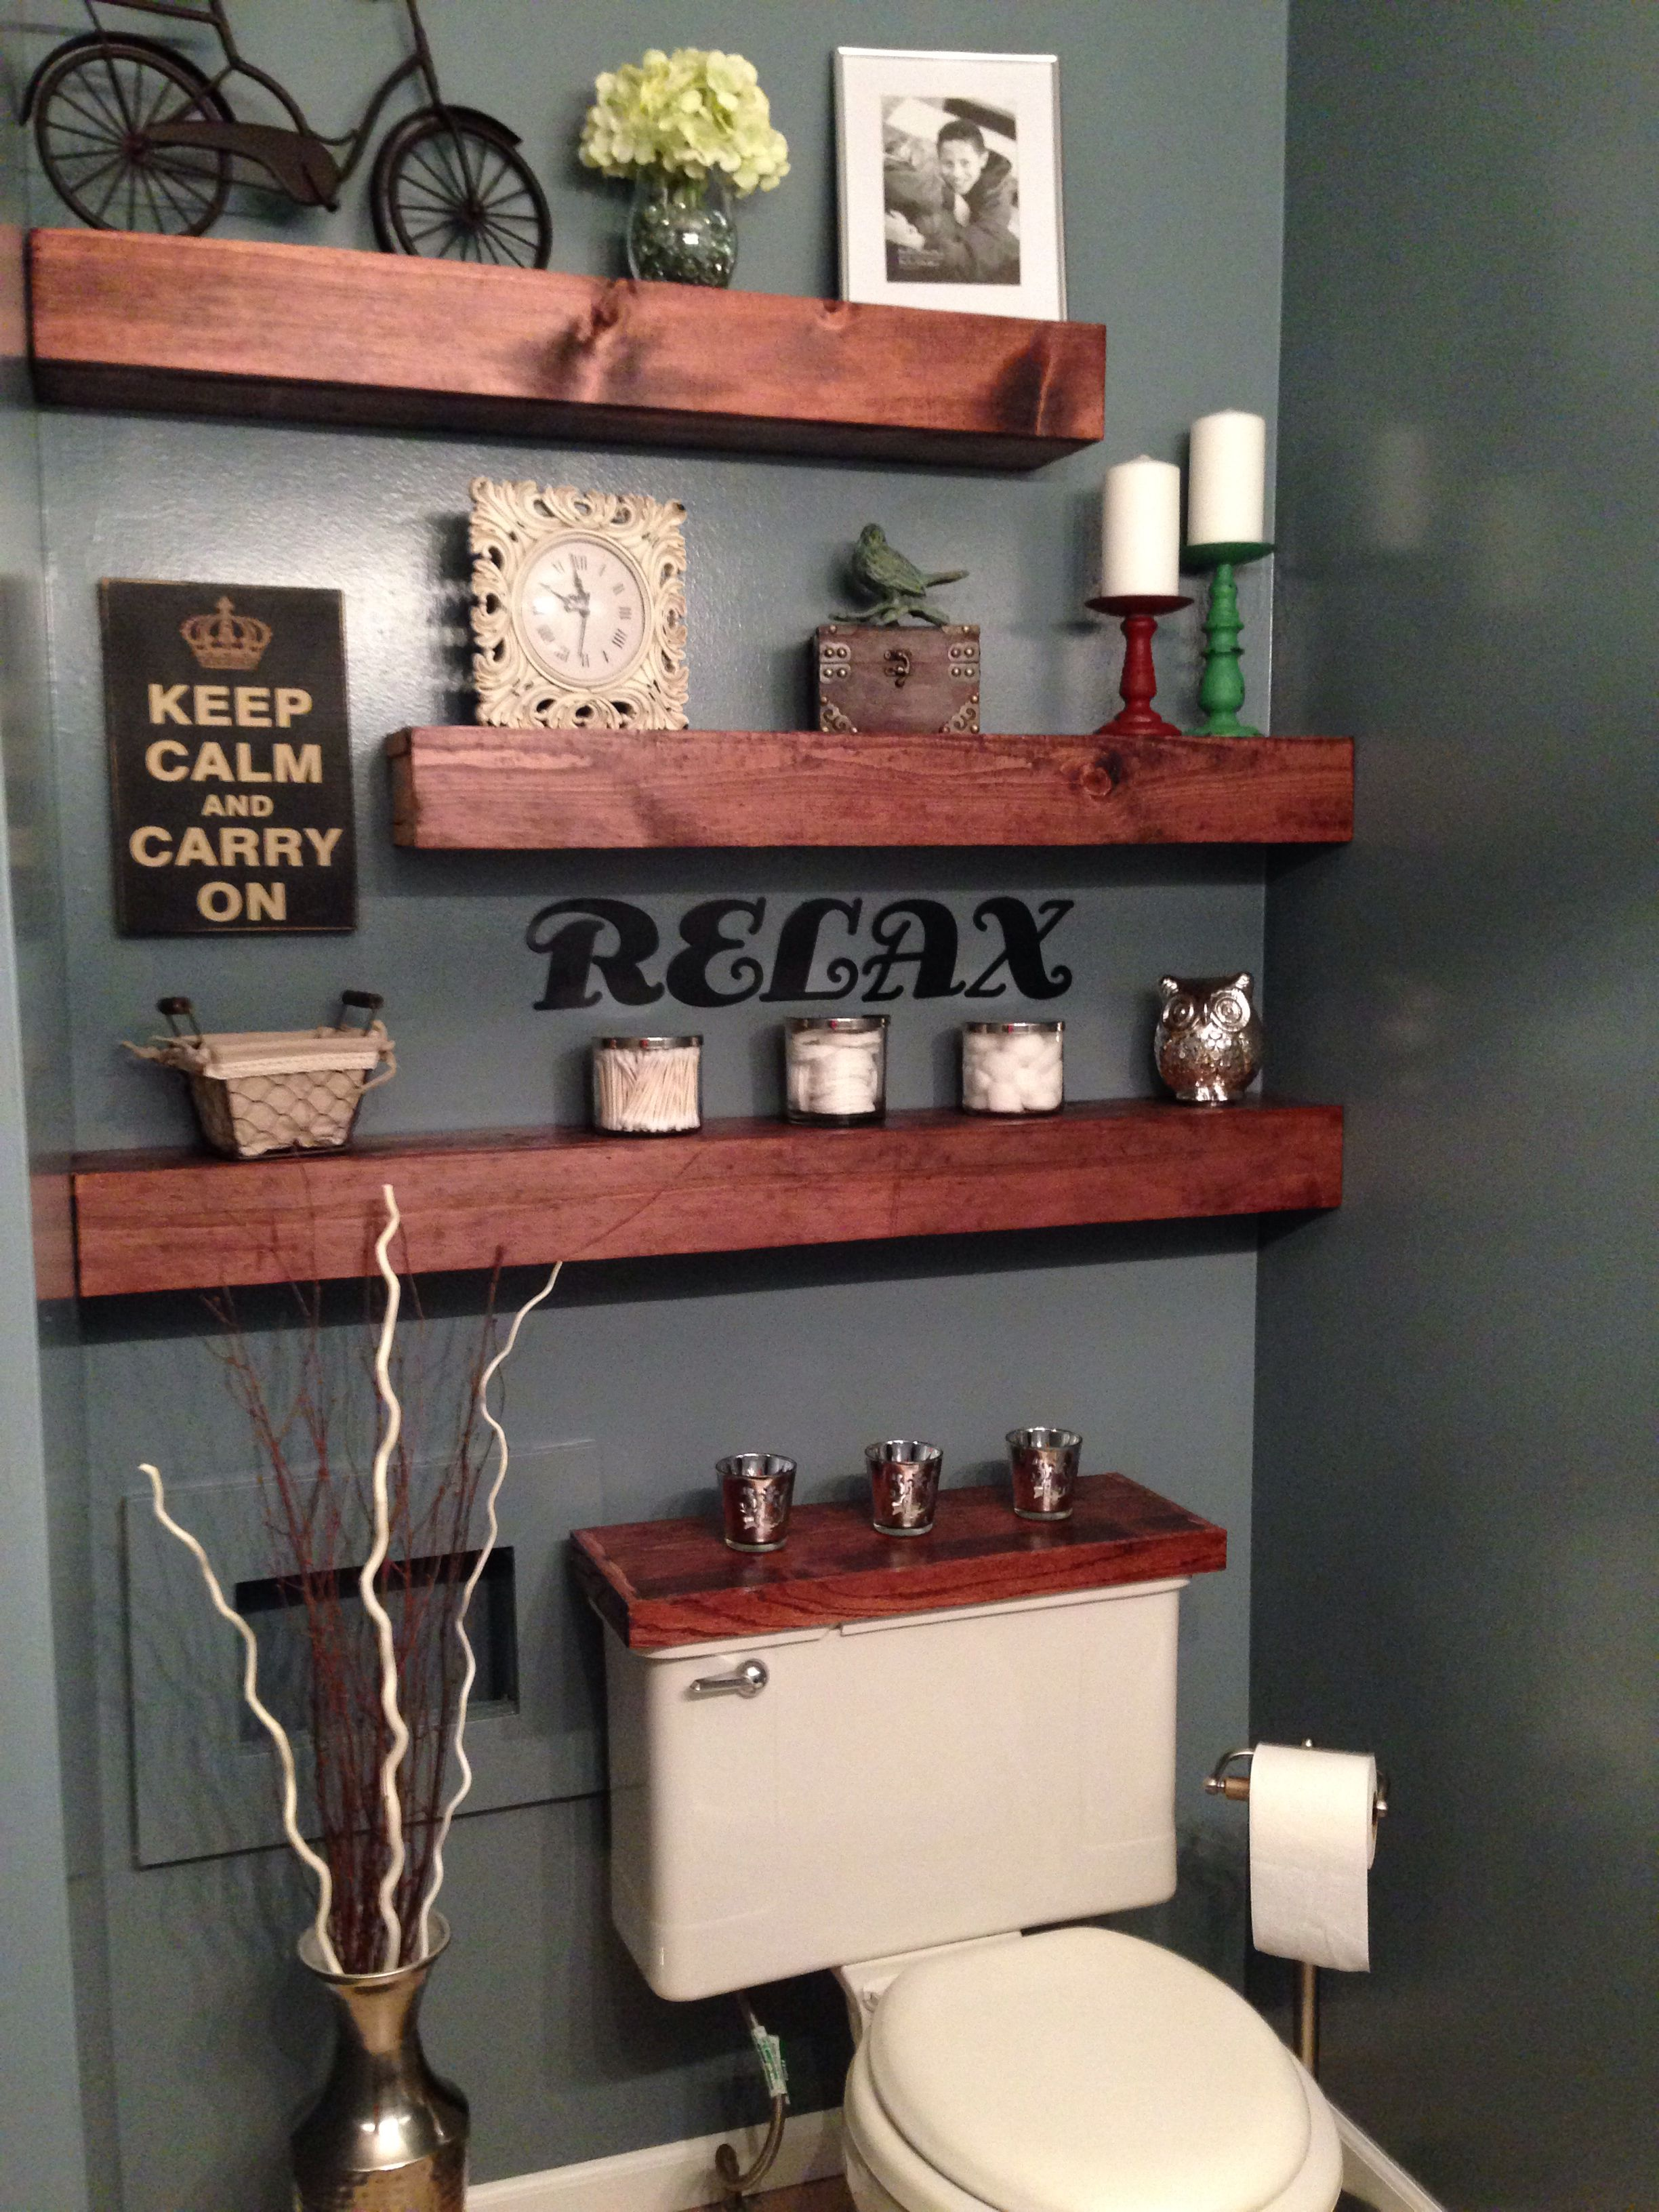 inspiring and cool display shelf ideas spruce the walls floating shelves bathroom more wooden for bedroom rustic industrial wall bookshelves cape town vanity double calgary butler